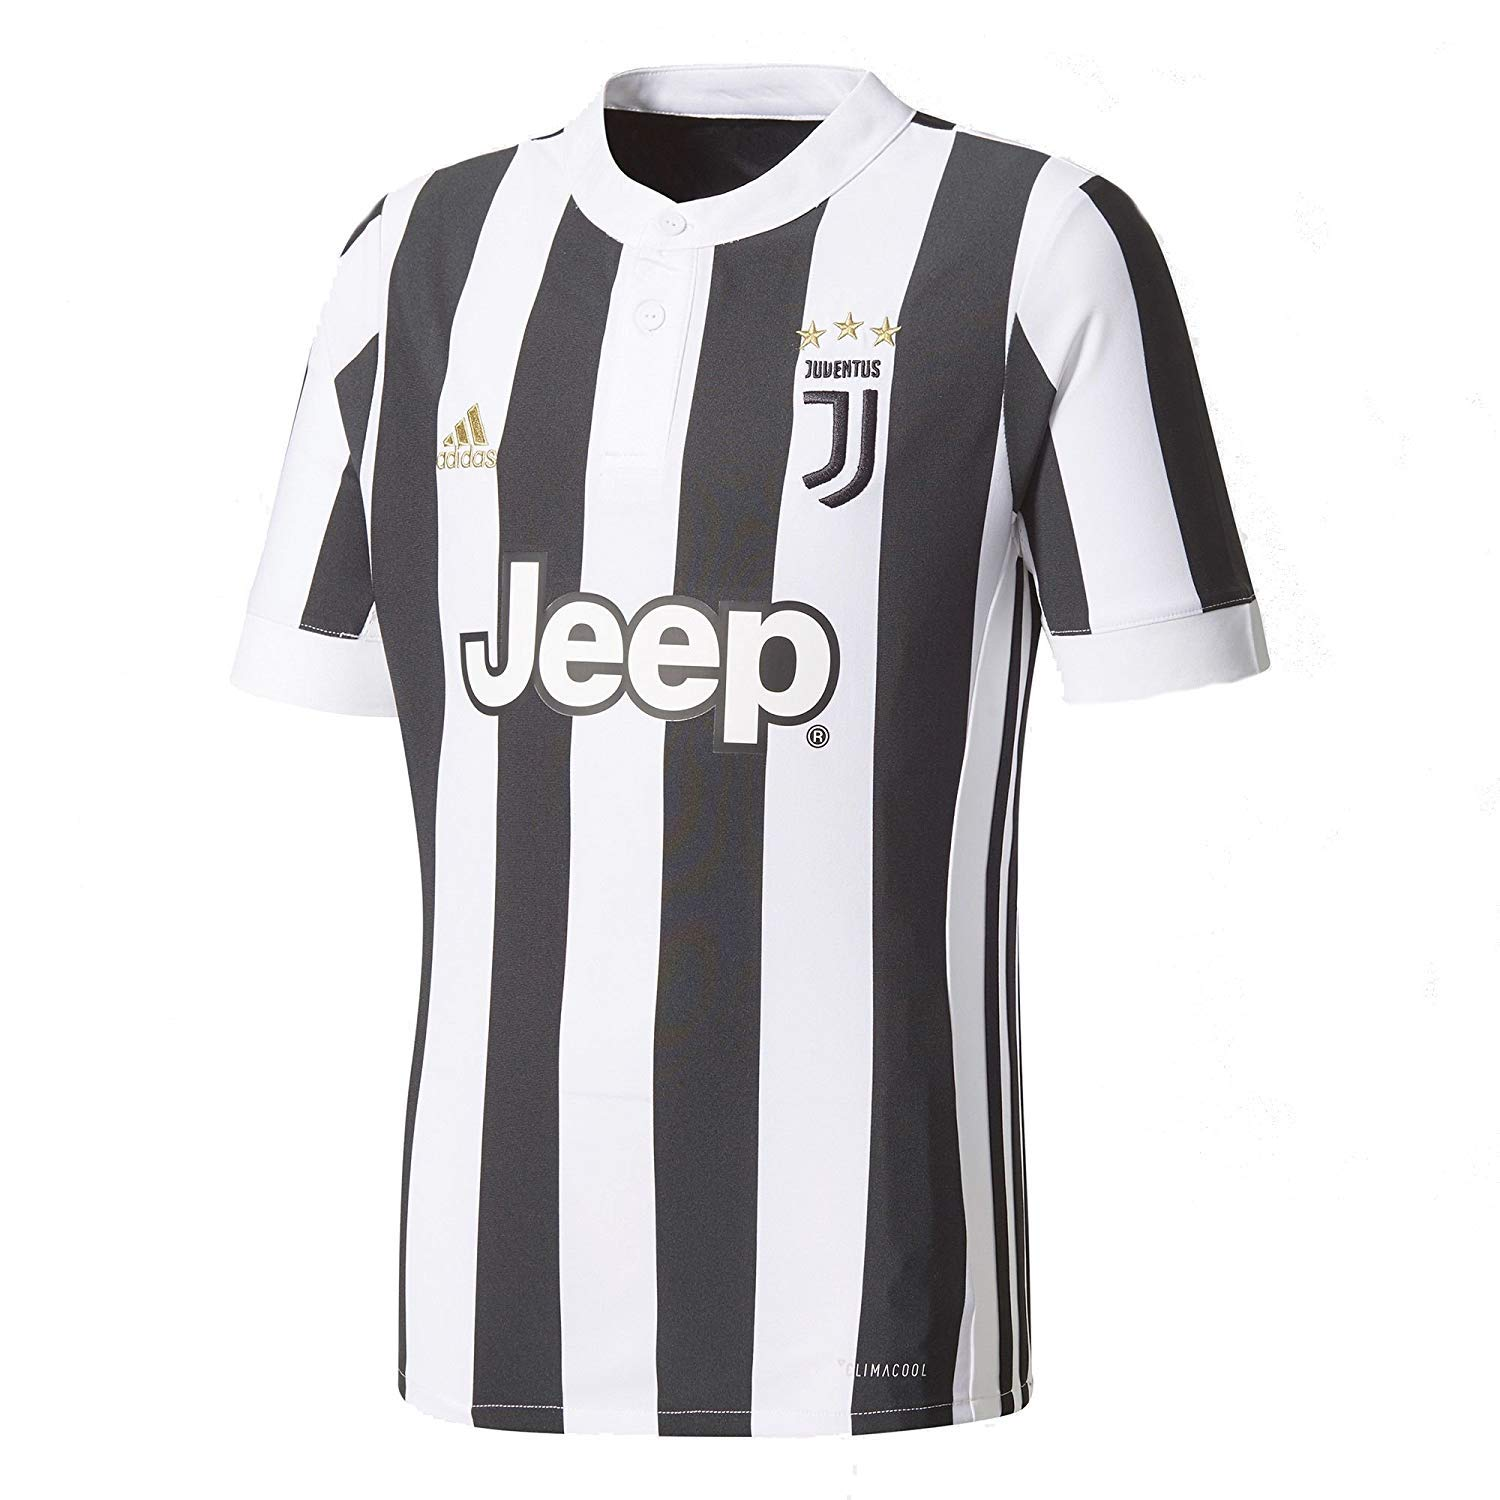 newest bcded 92685 adidas Youth Soccer Juventus Home Jersey